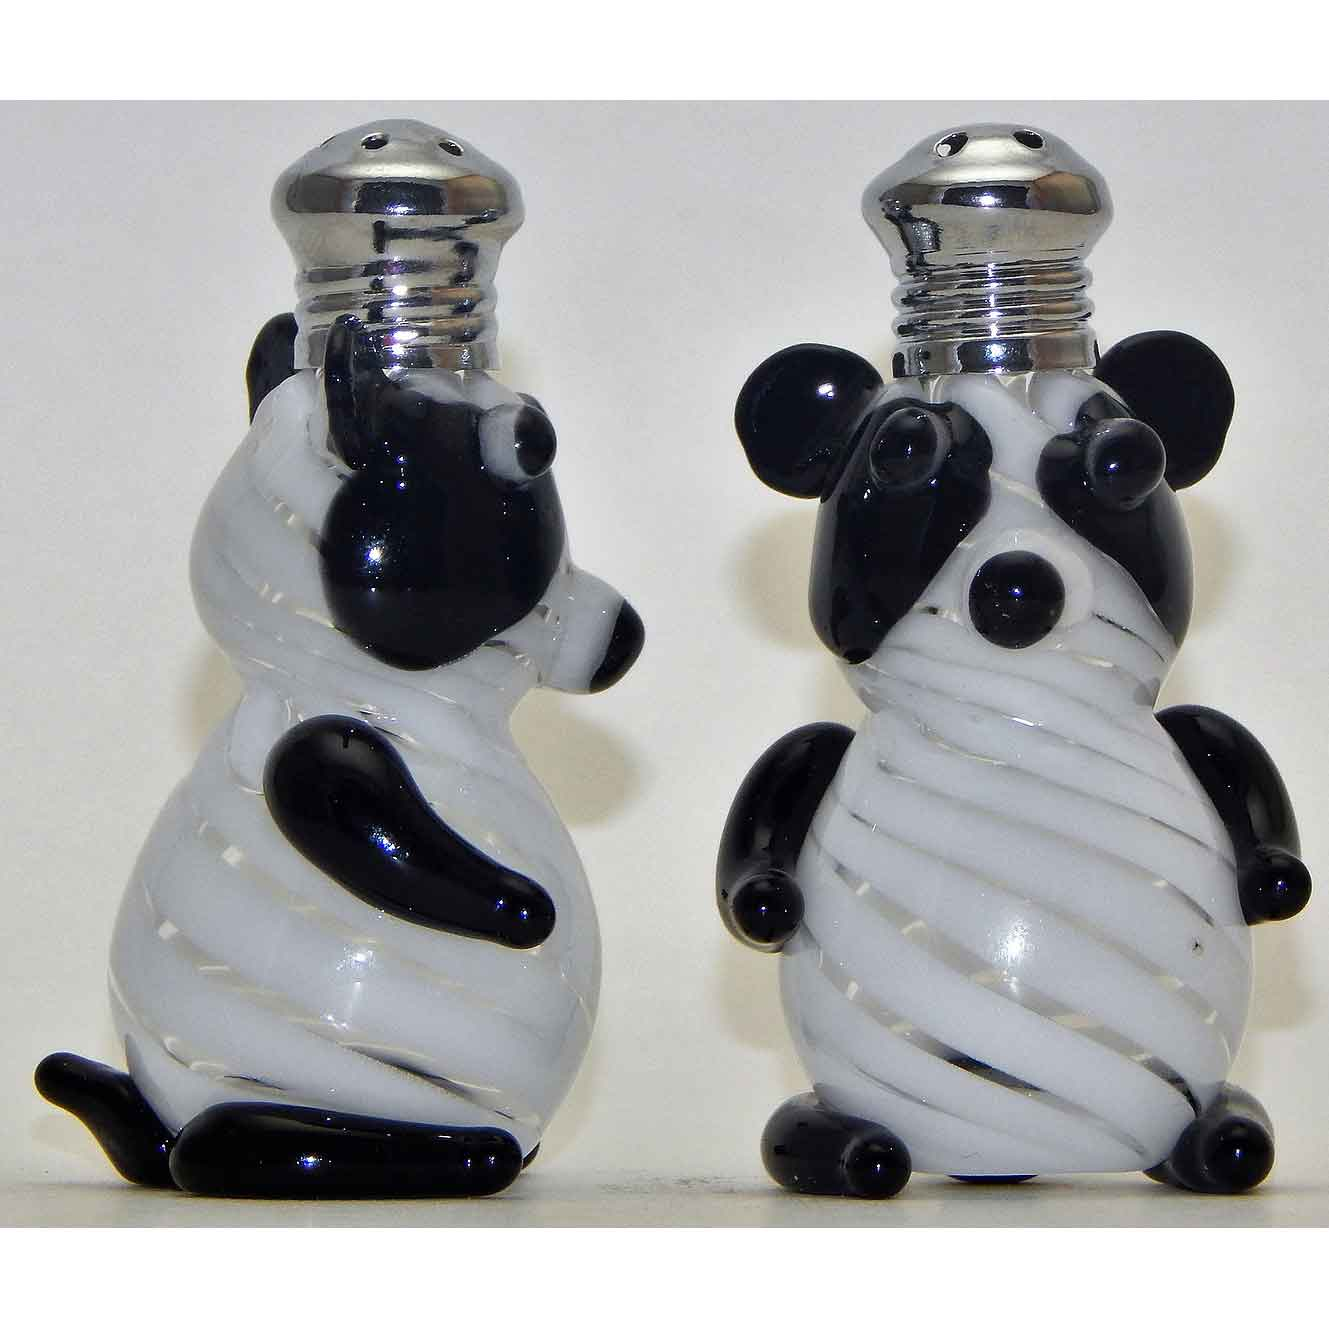 Pandas Blown Glass Salt and Pepper Shaker 259 by Four Sisters Art Glass